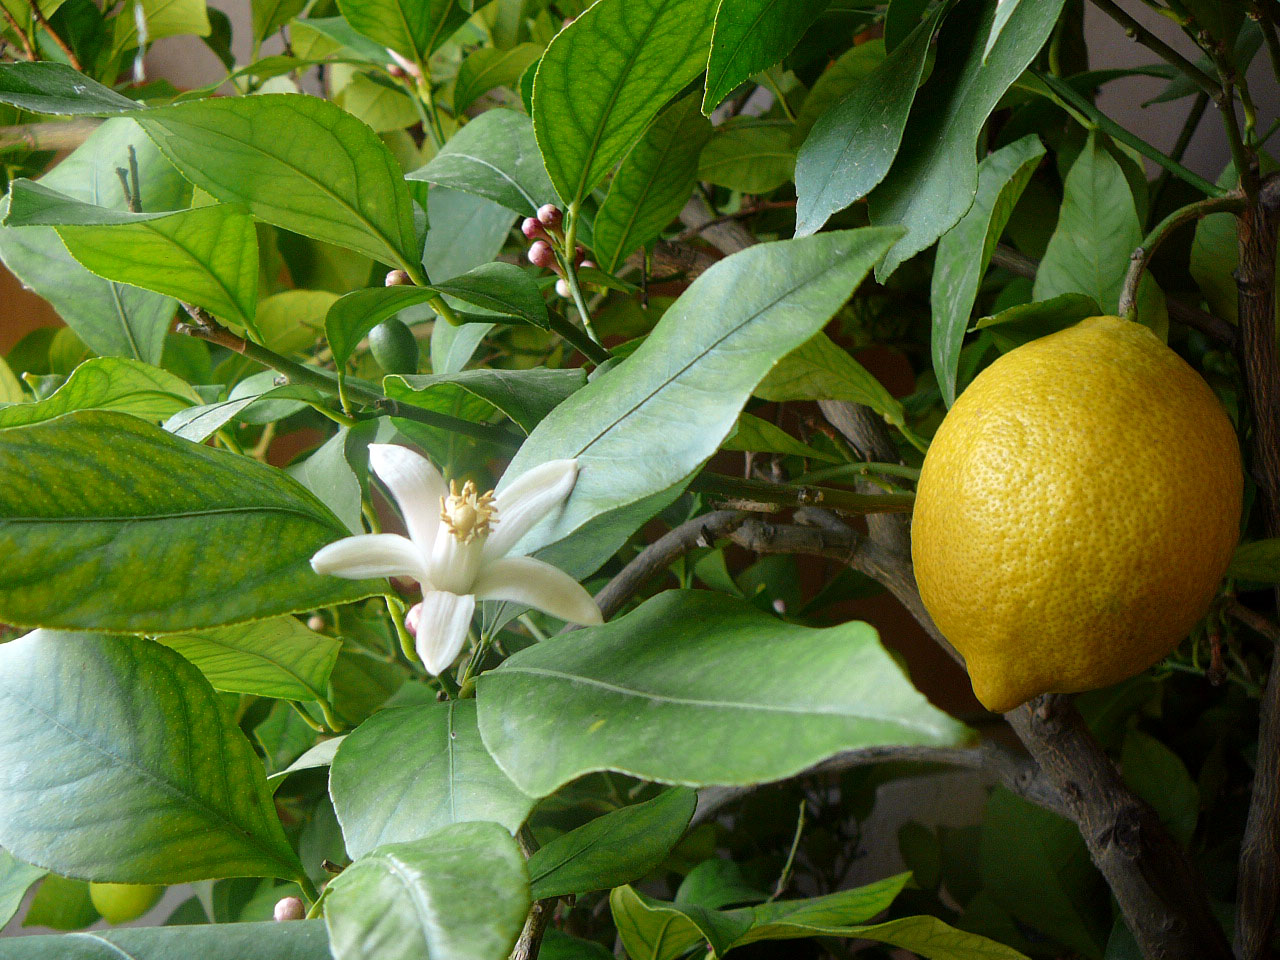 Flowers and fruit of the lemon tree, also known as //Citrus x limon//.